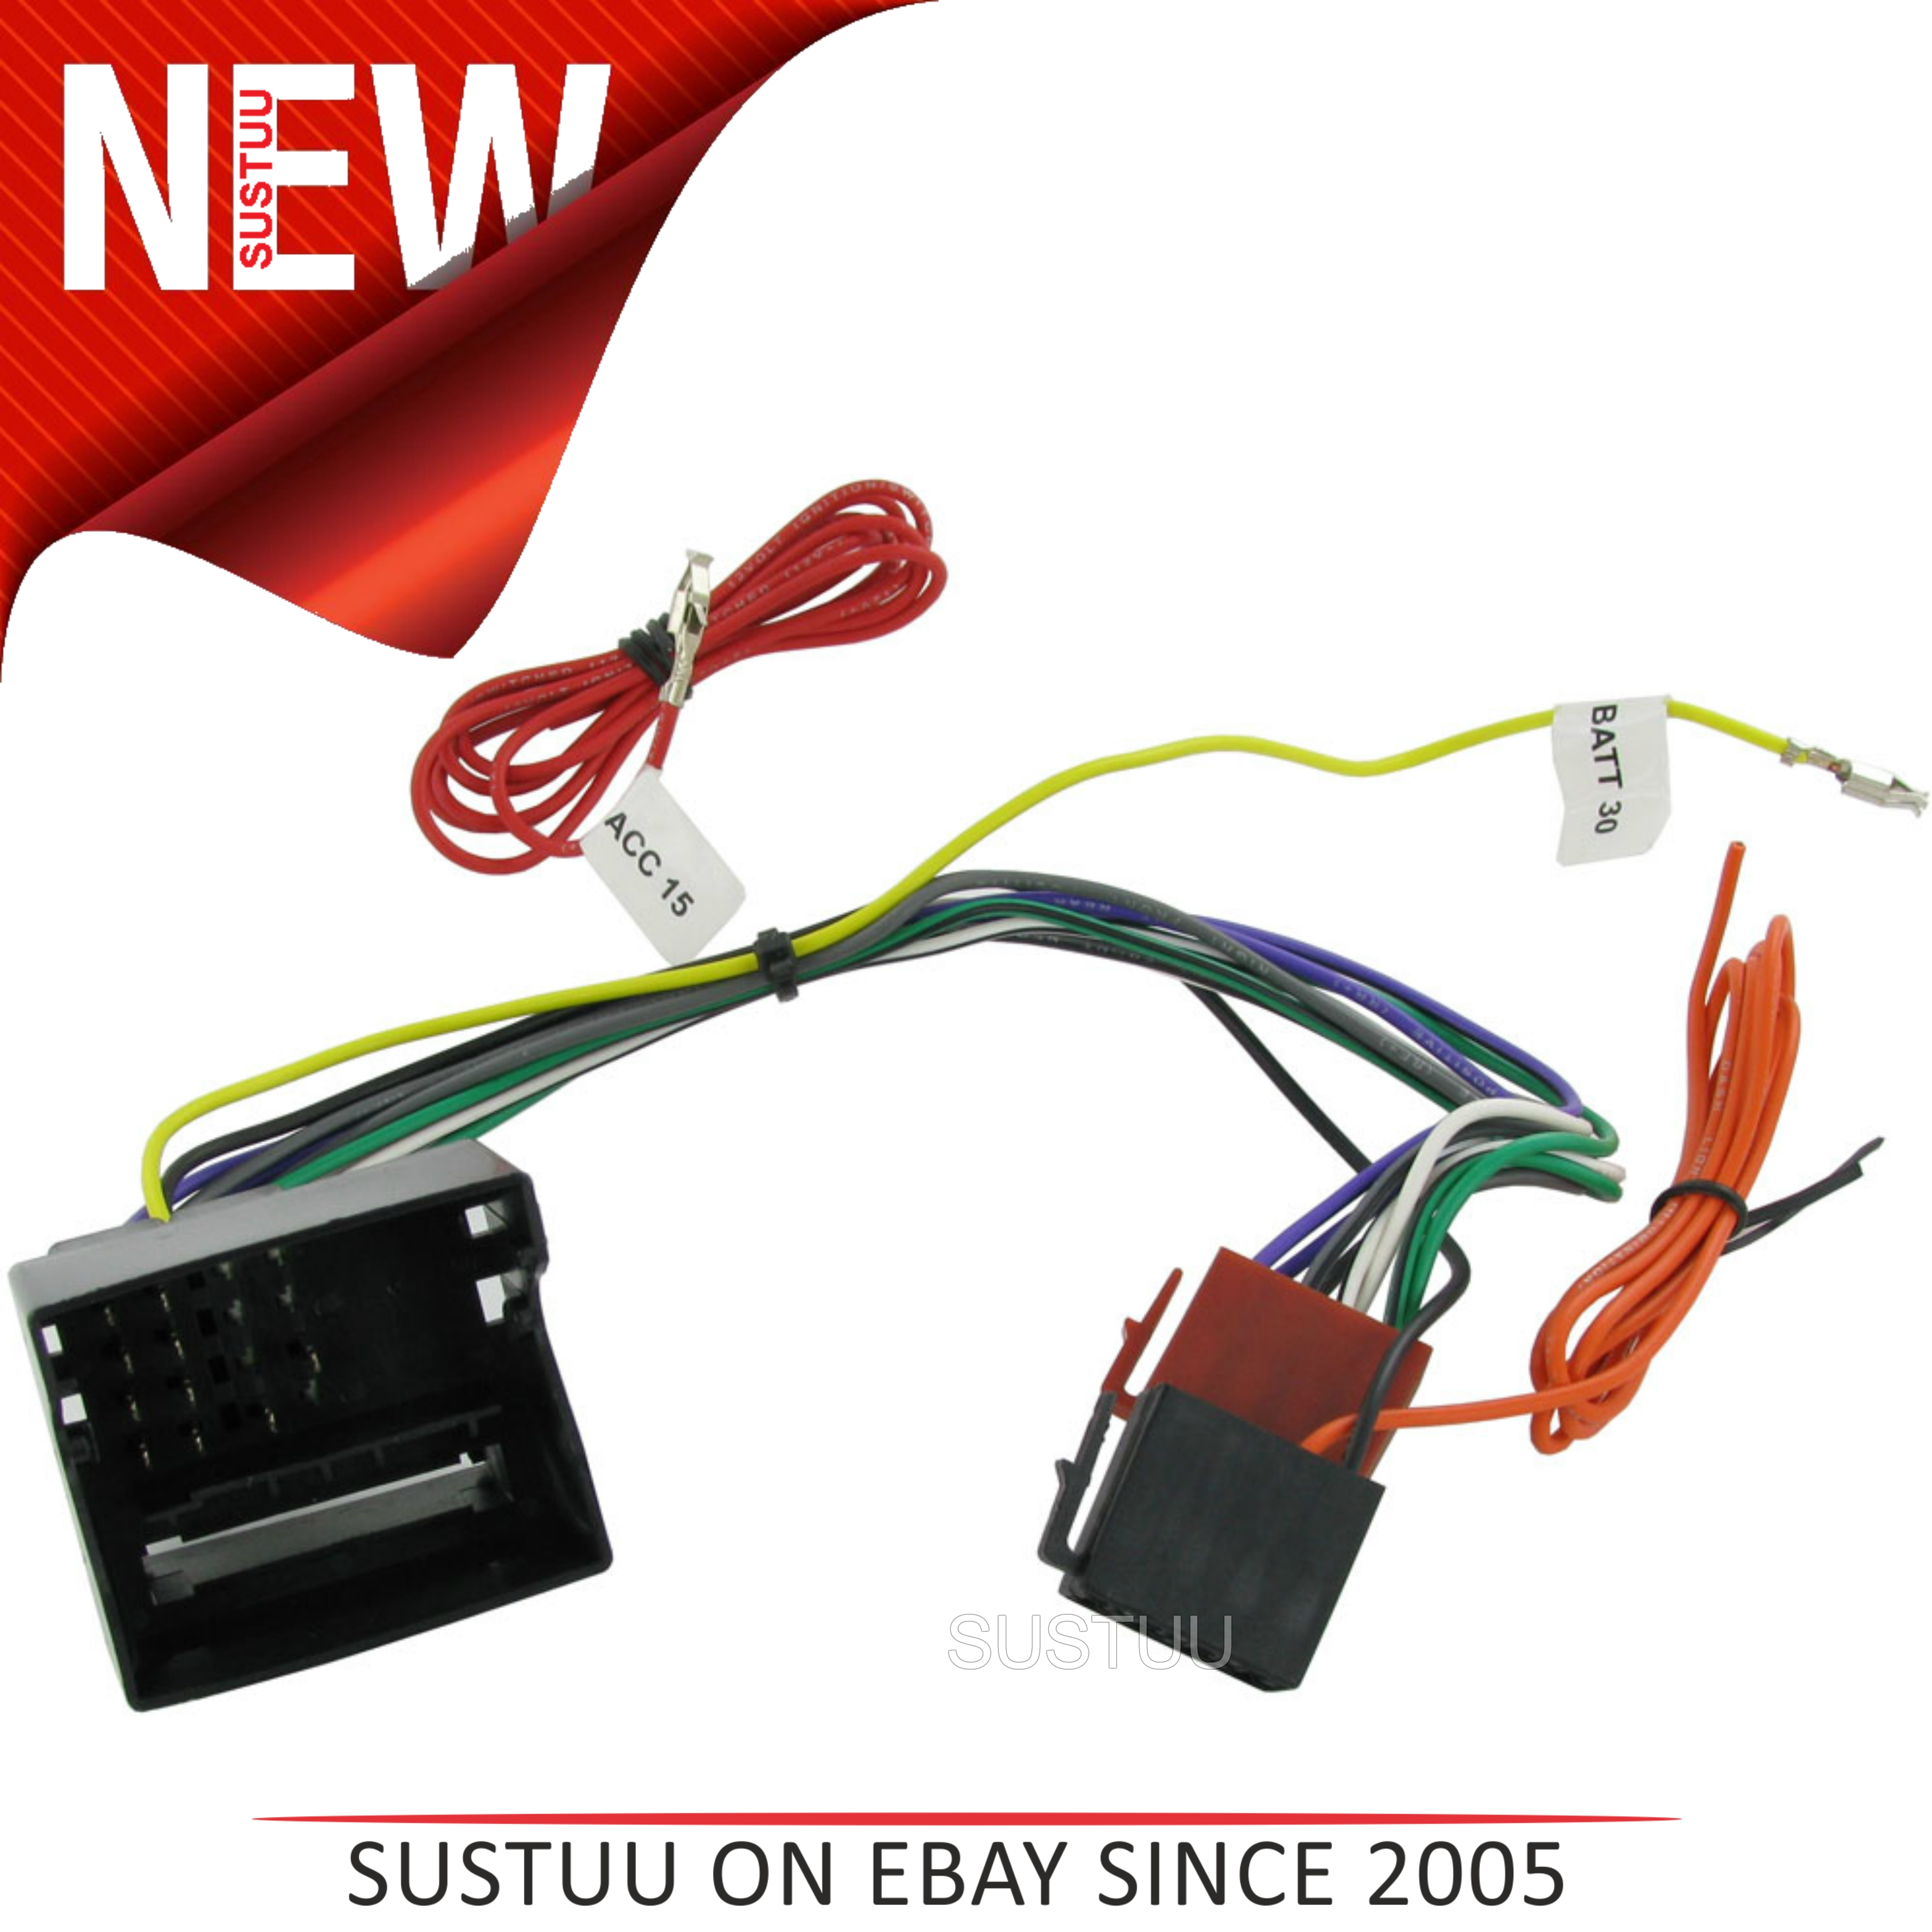 c2 20vw01 car stereo iso wiring fakra harness adaptor vw. Black Bedroom Furniture Sets. Home Design Ideas